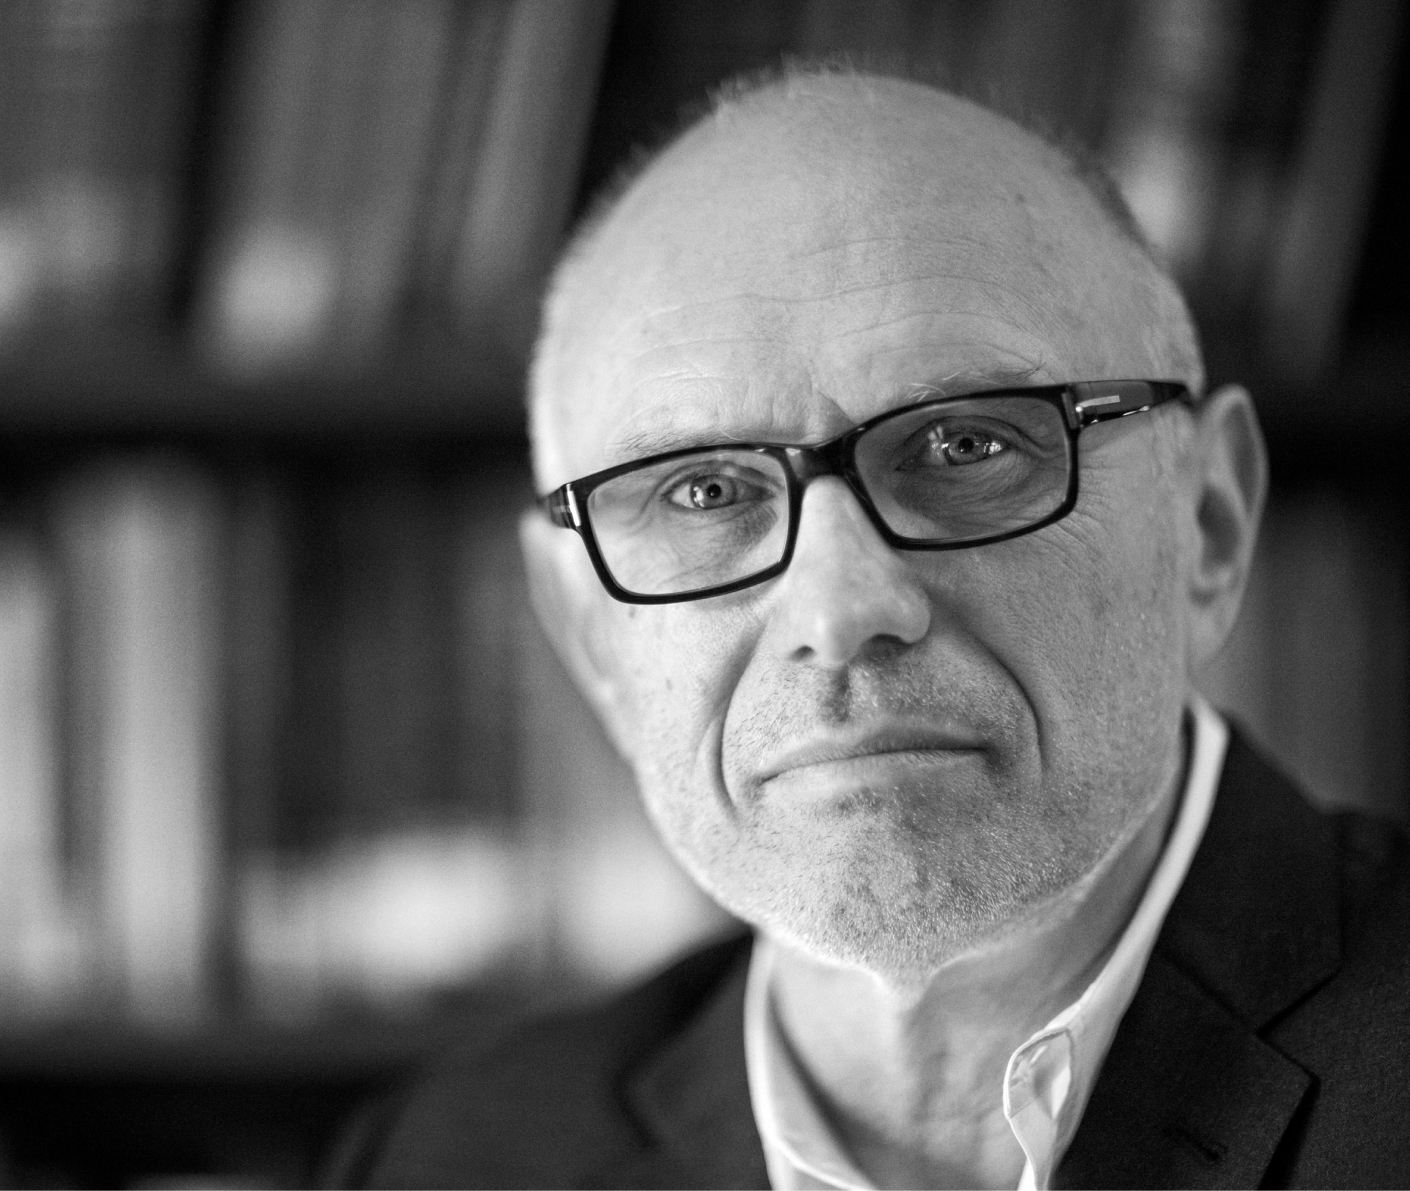 A photo of Miroslav Volf